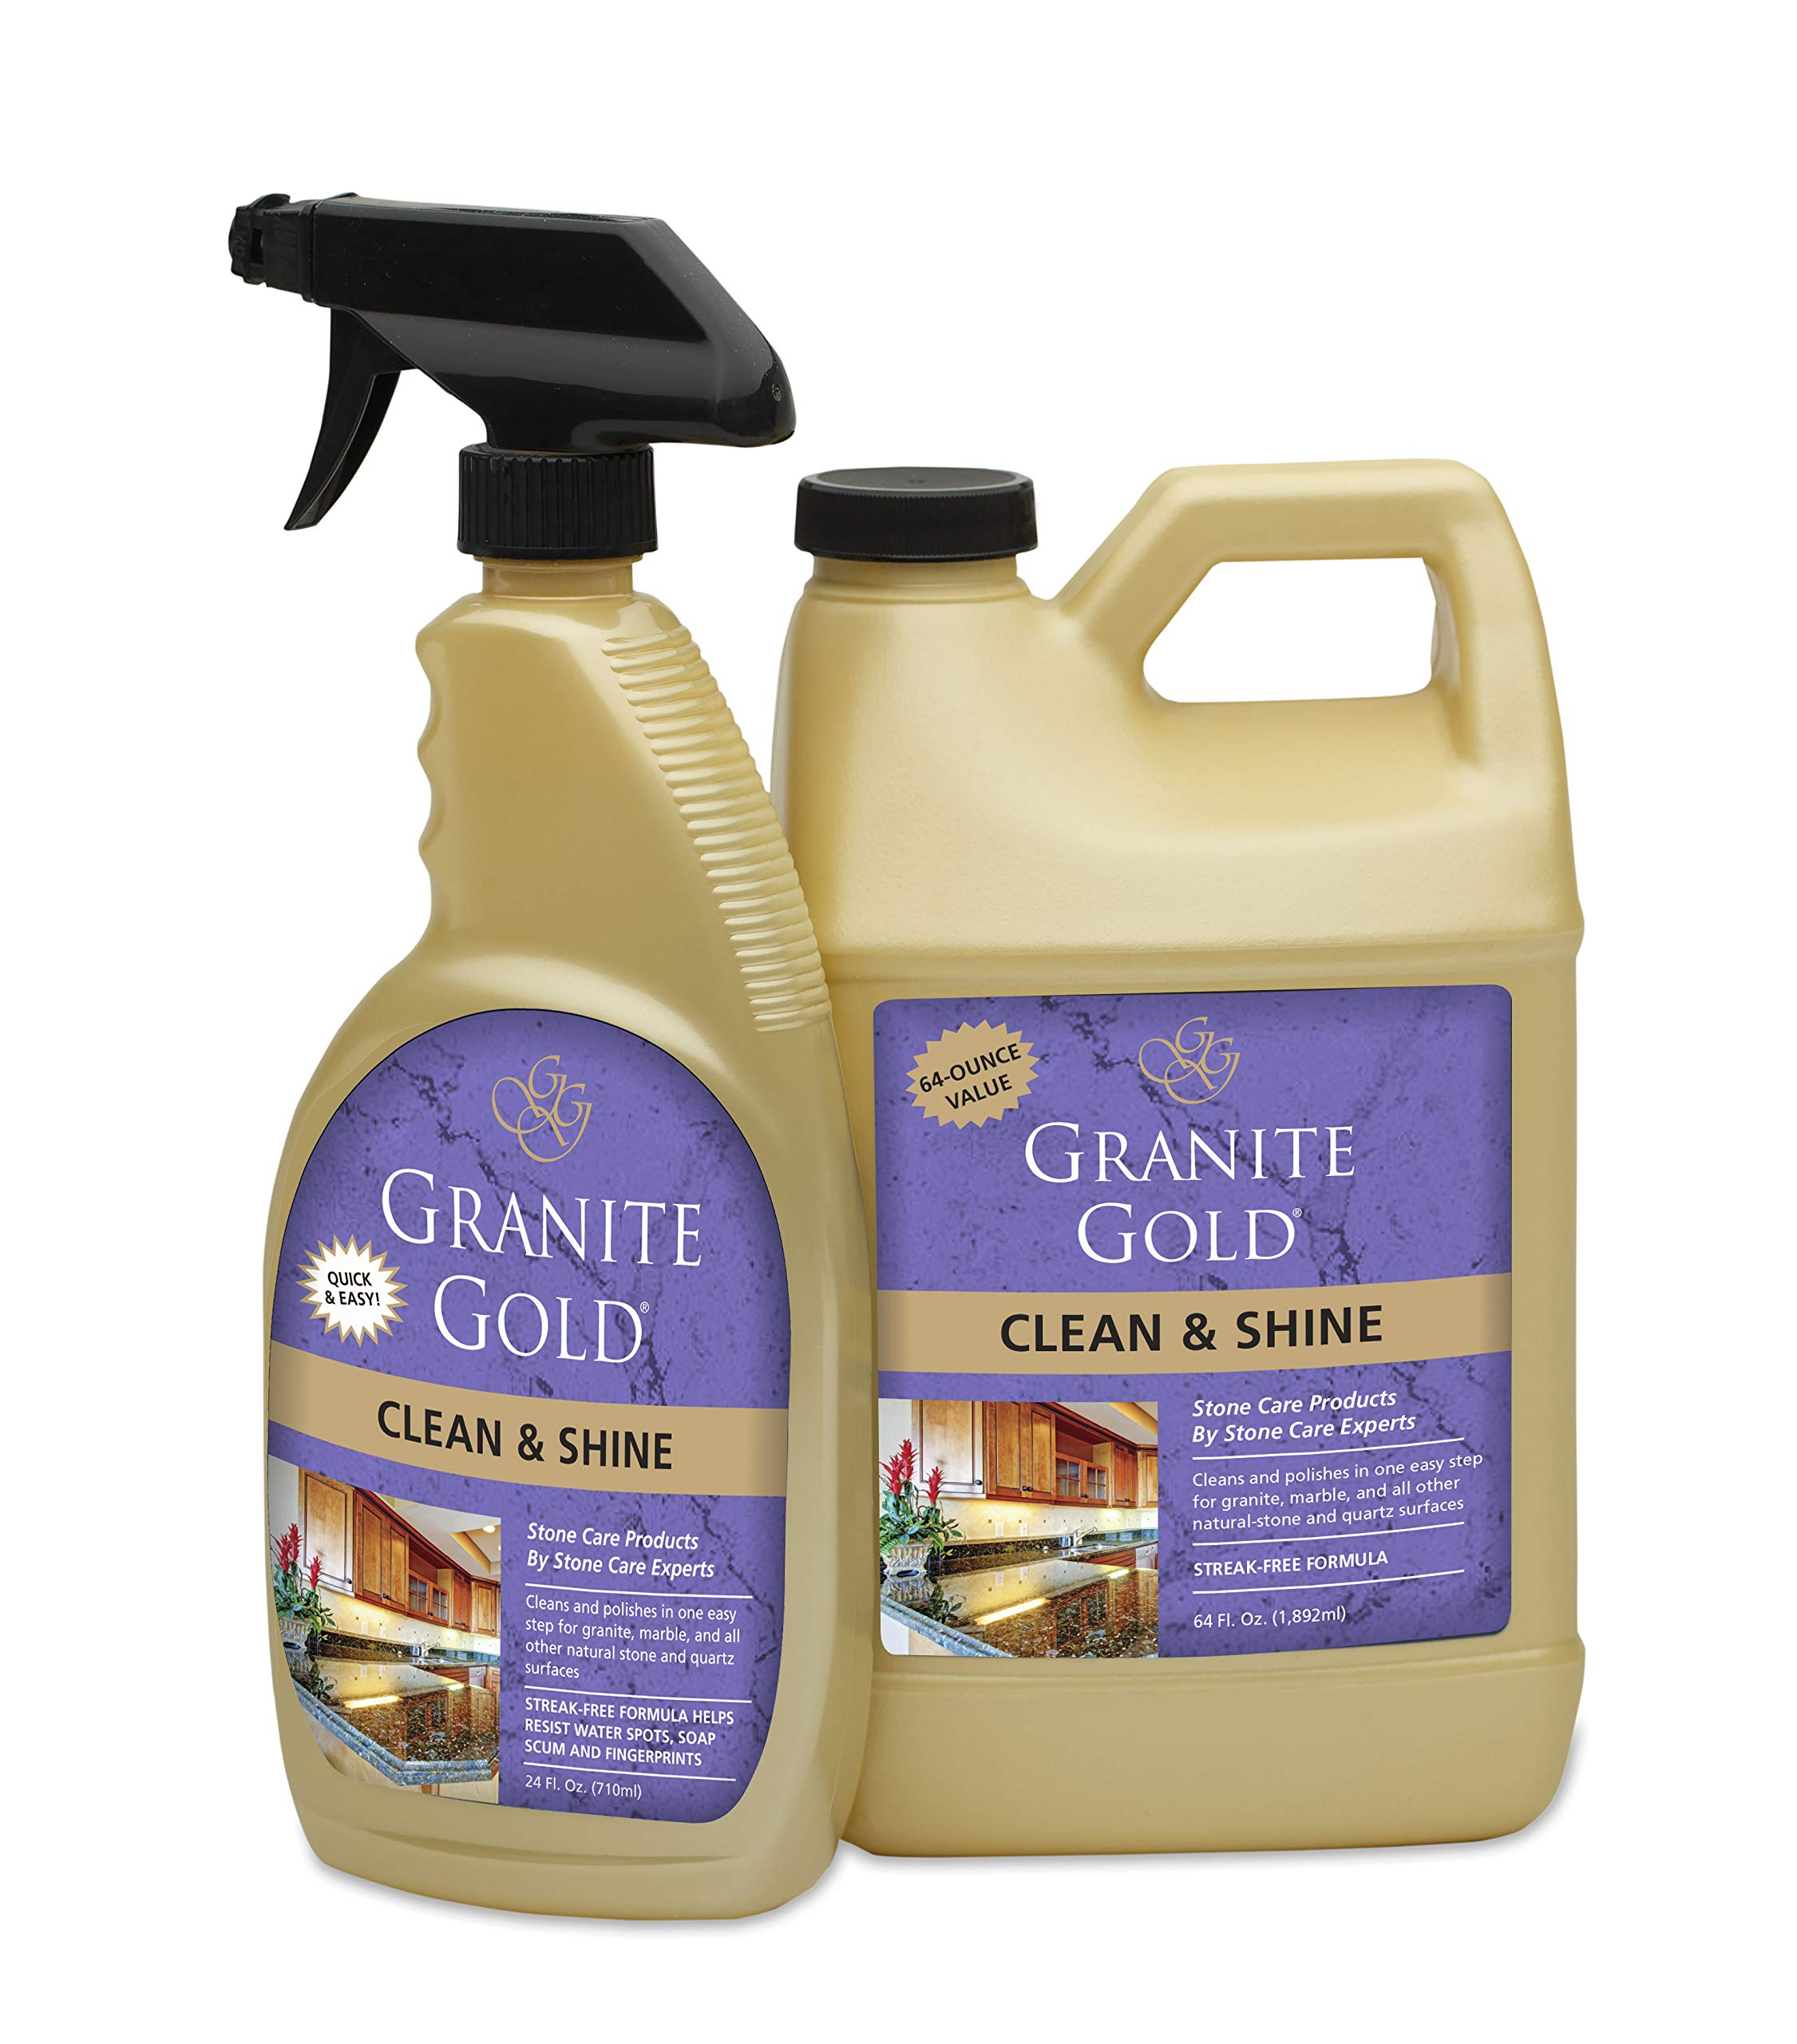 Granite Gold Clean and Shine Spray and Refill Value Pack - Polishes and Deep Cleans Natural Stone Surfaces, Made in The USA by Granite Gold